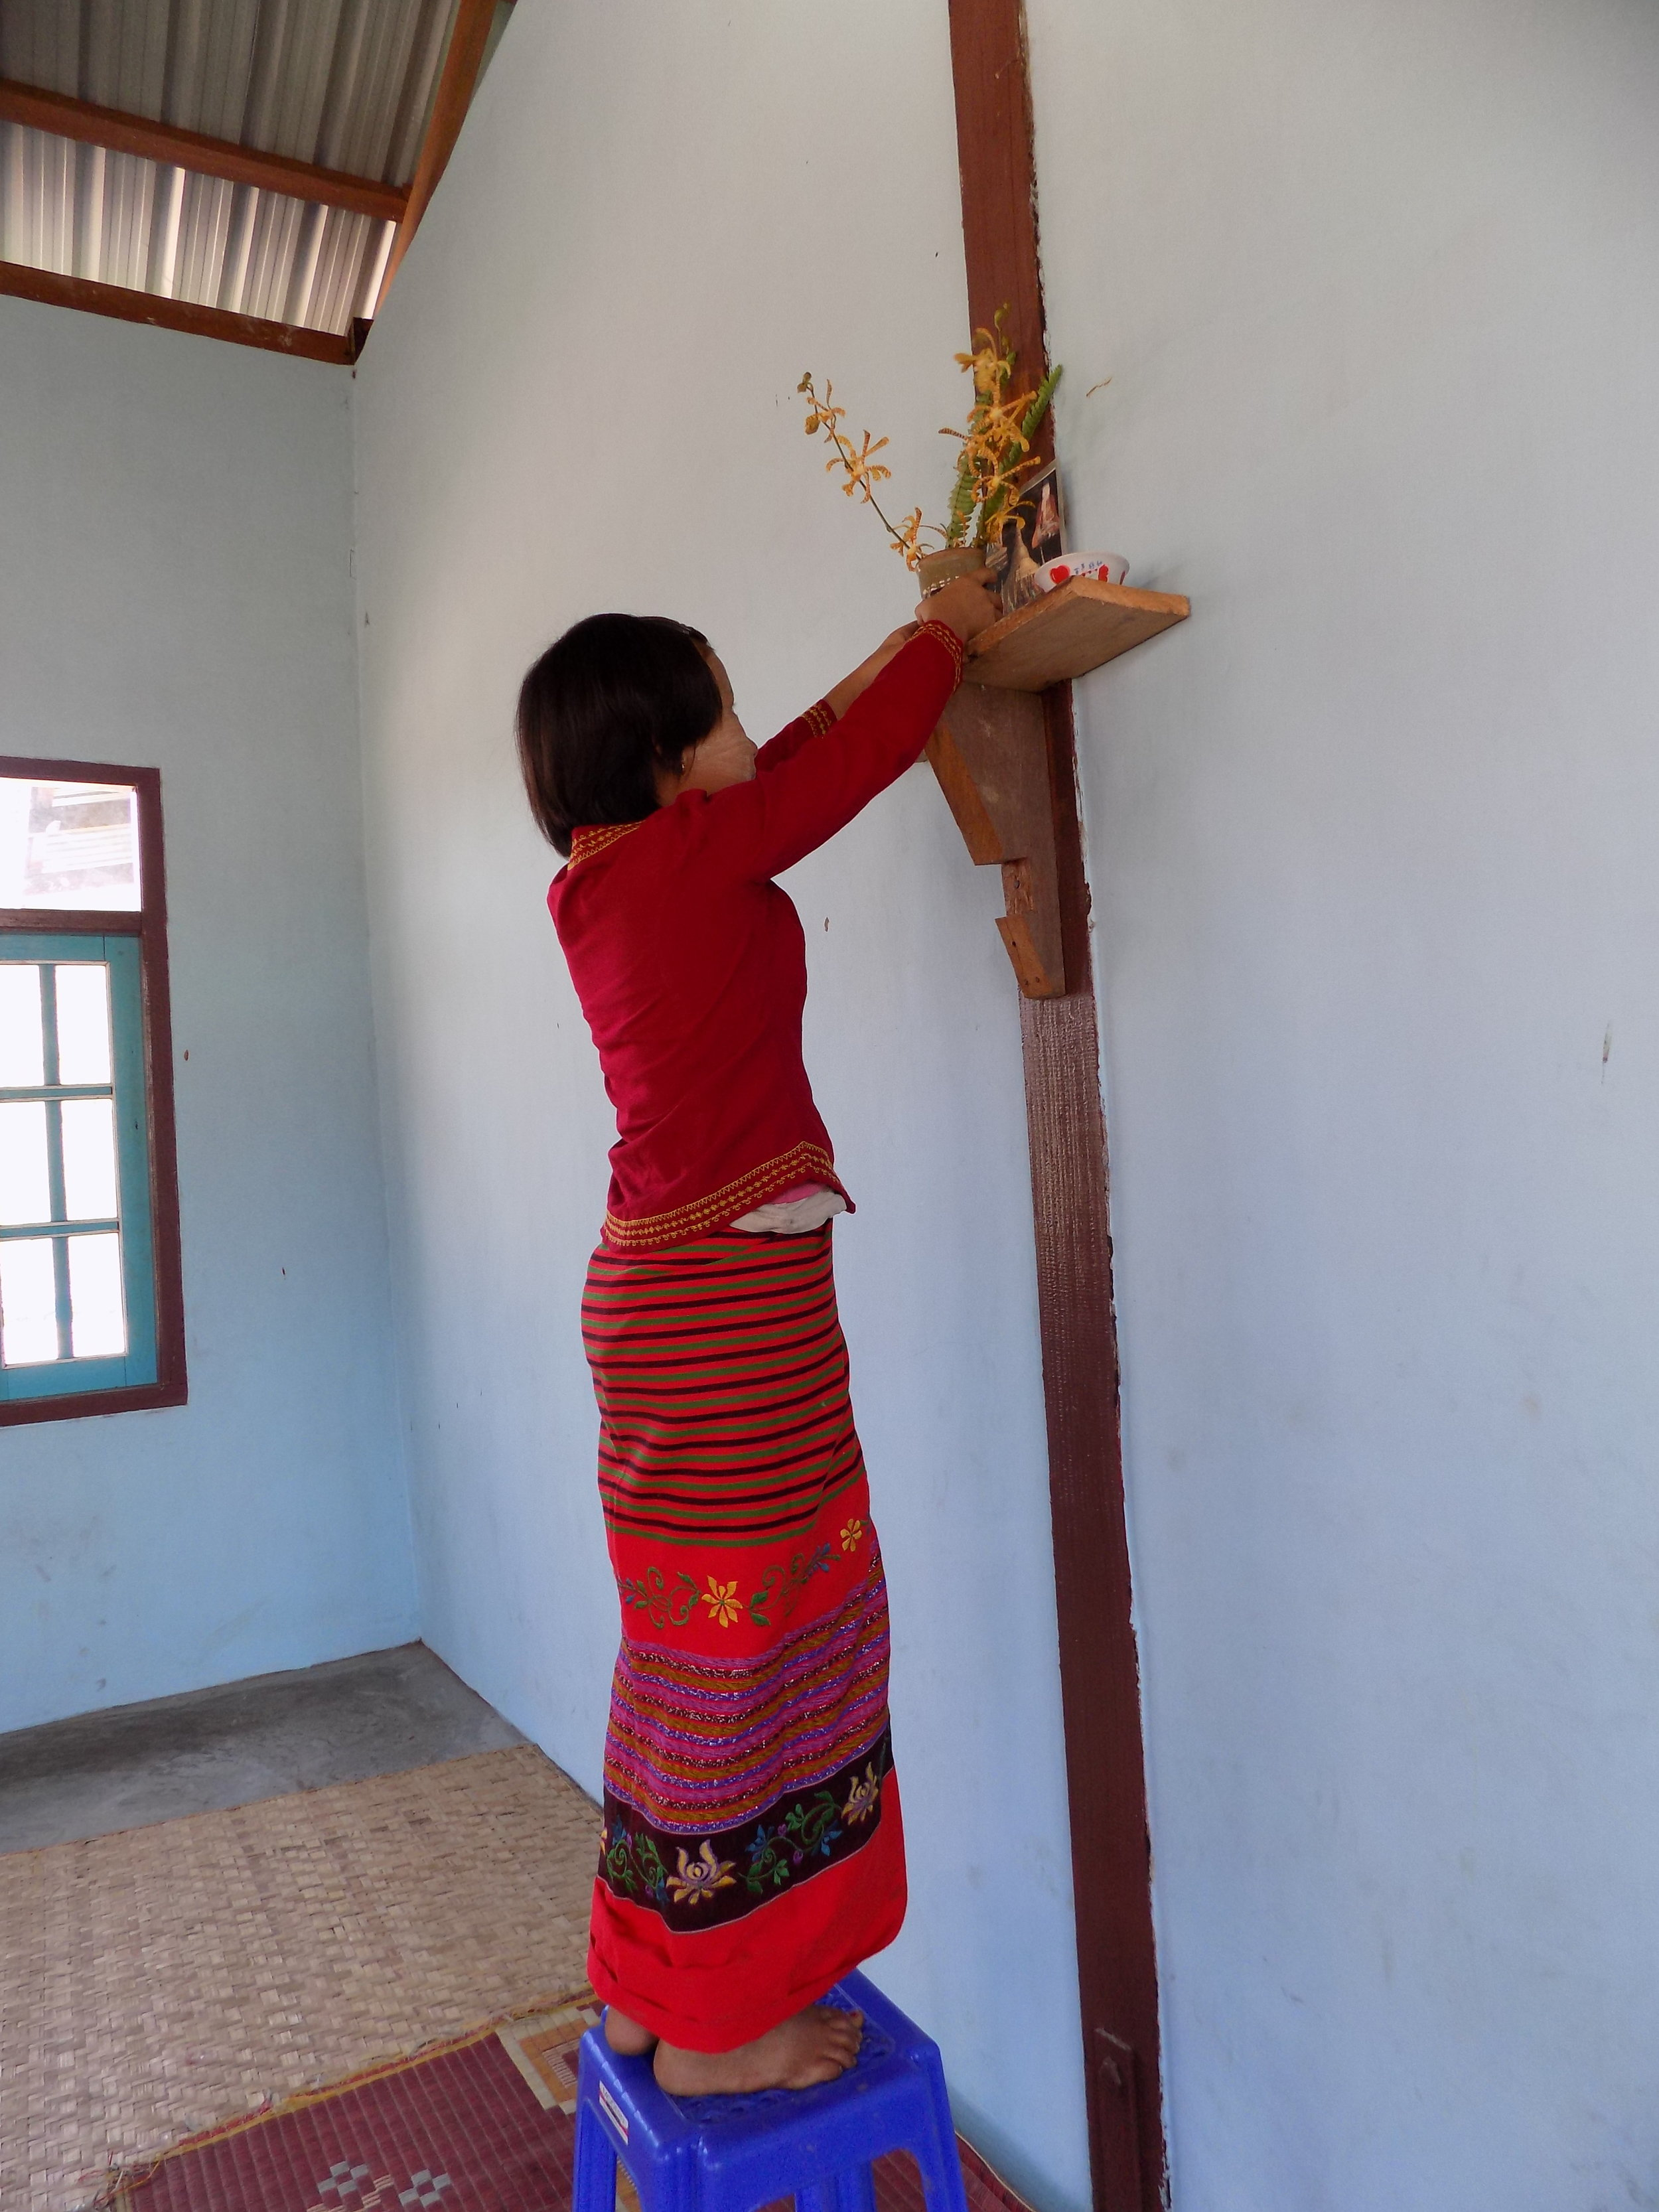 She is Buddhist and prepares flowers for the altar.